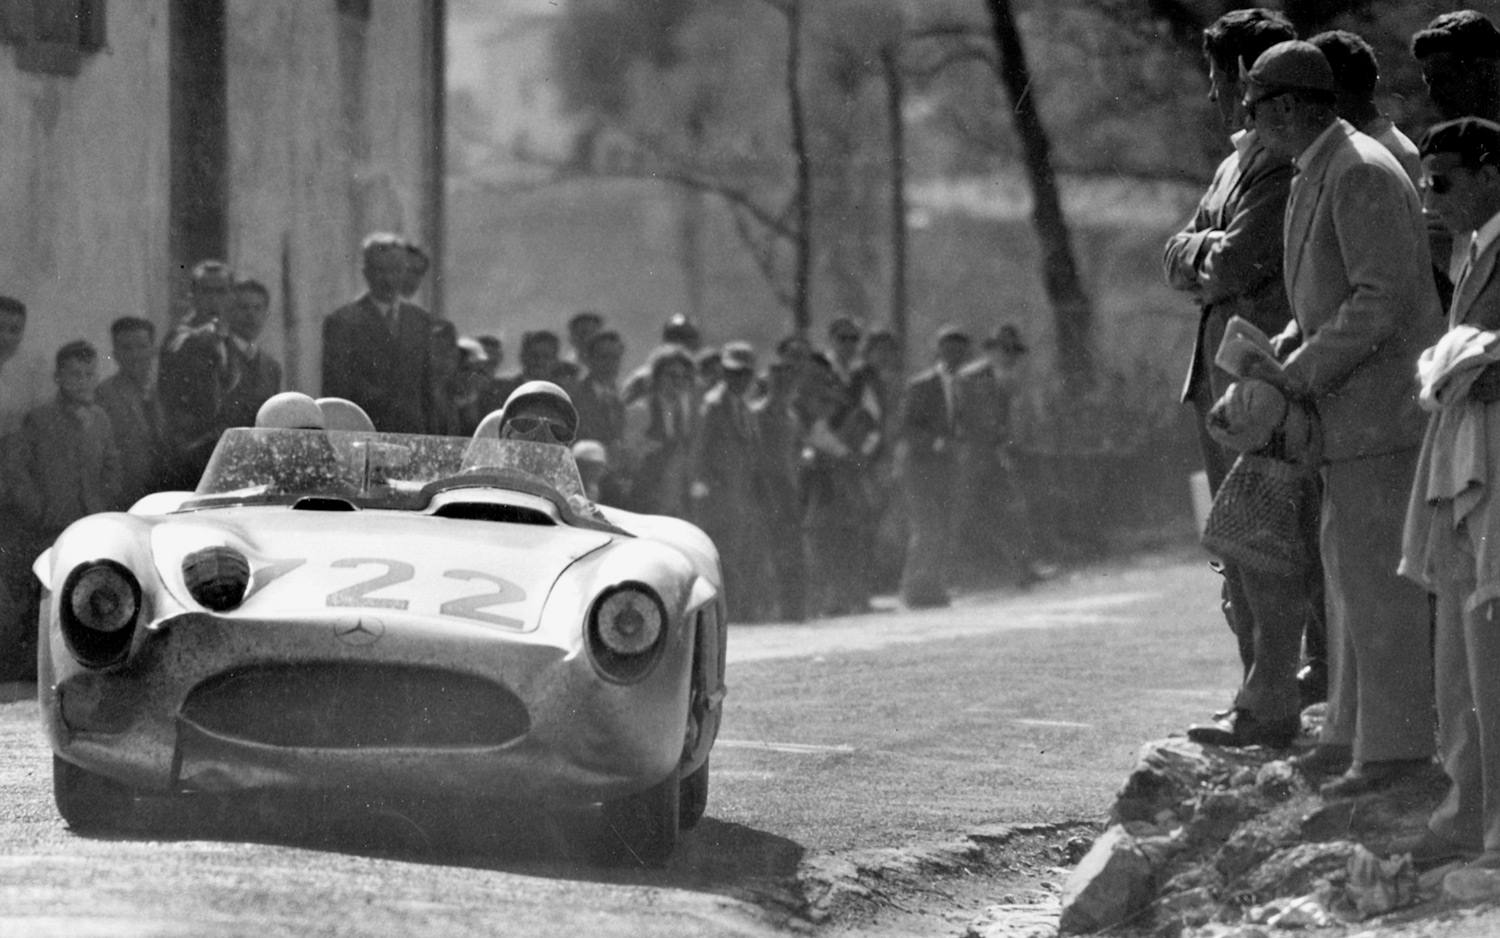 stirling-moss-and-denis-jenkinson-mercedes-benz-300-slr-in-1955-mille-miglia-front-after-crash